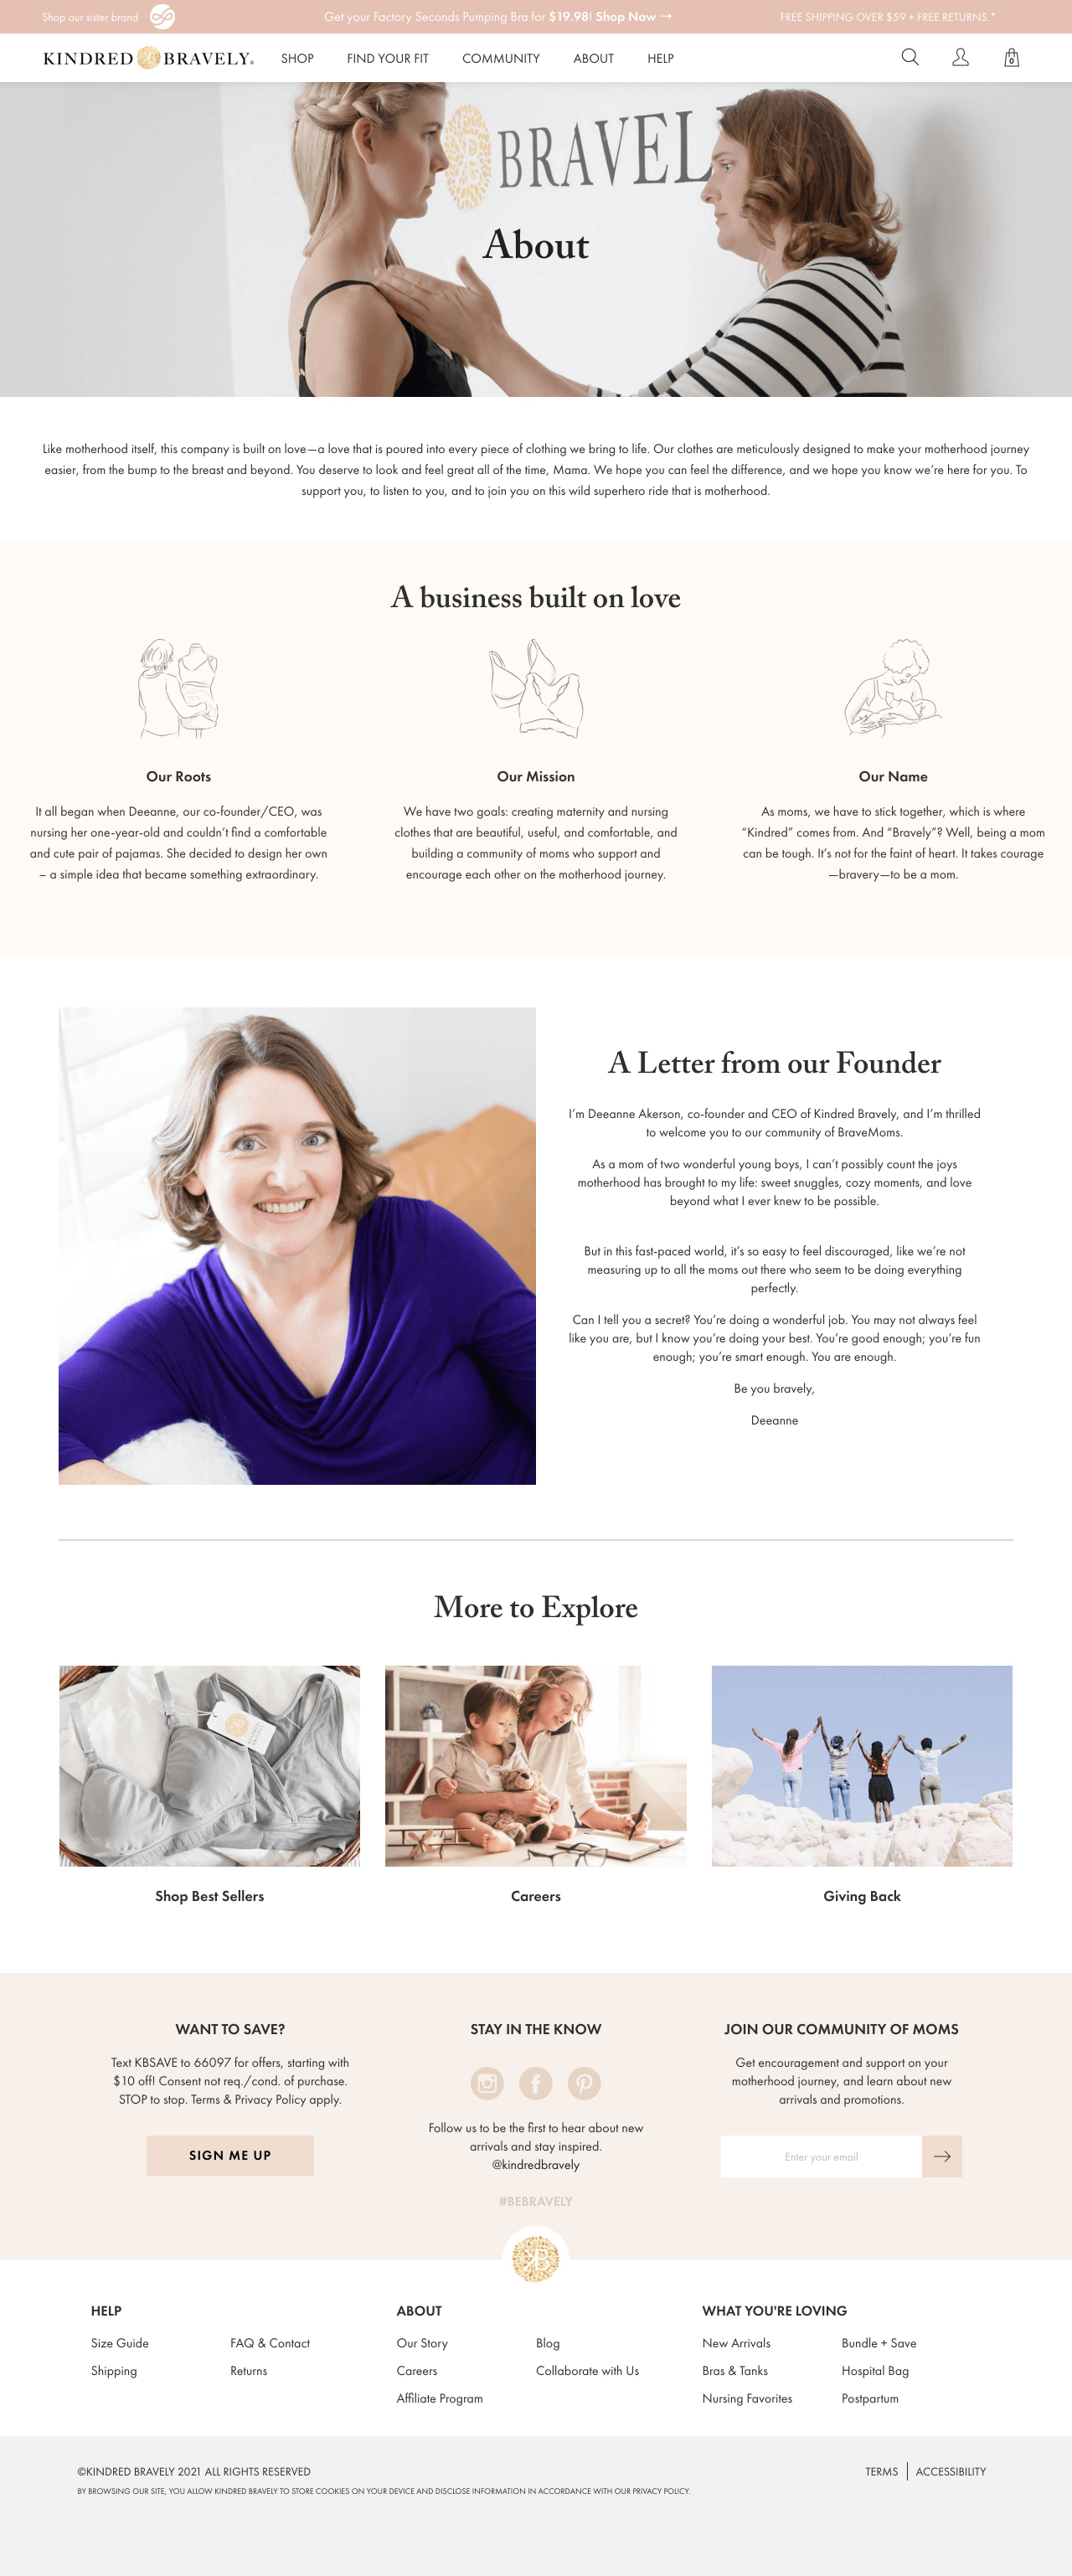 Customer-centric example of a Shopify About Us page by Kindred Bravely